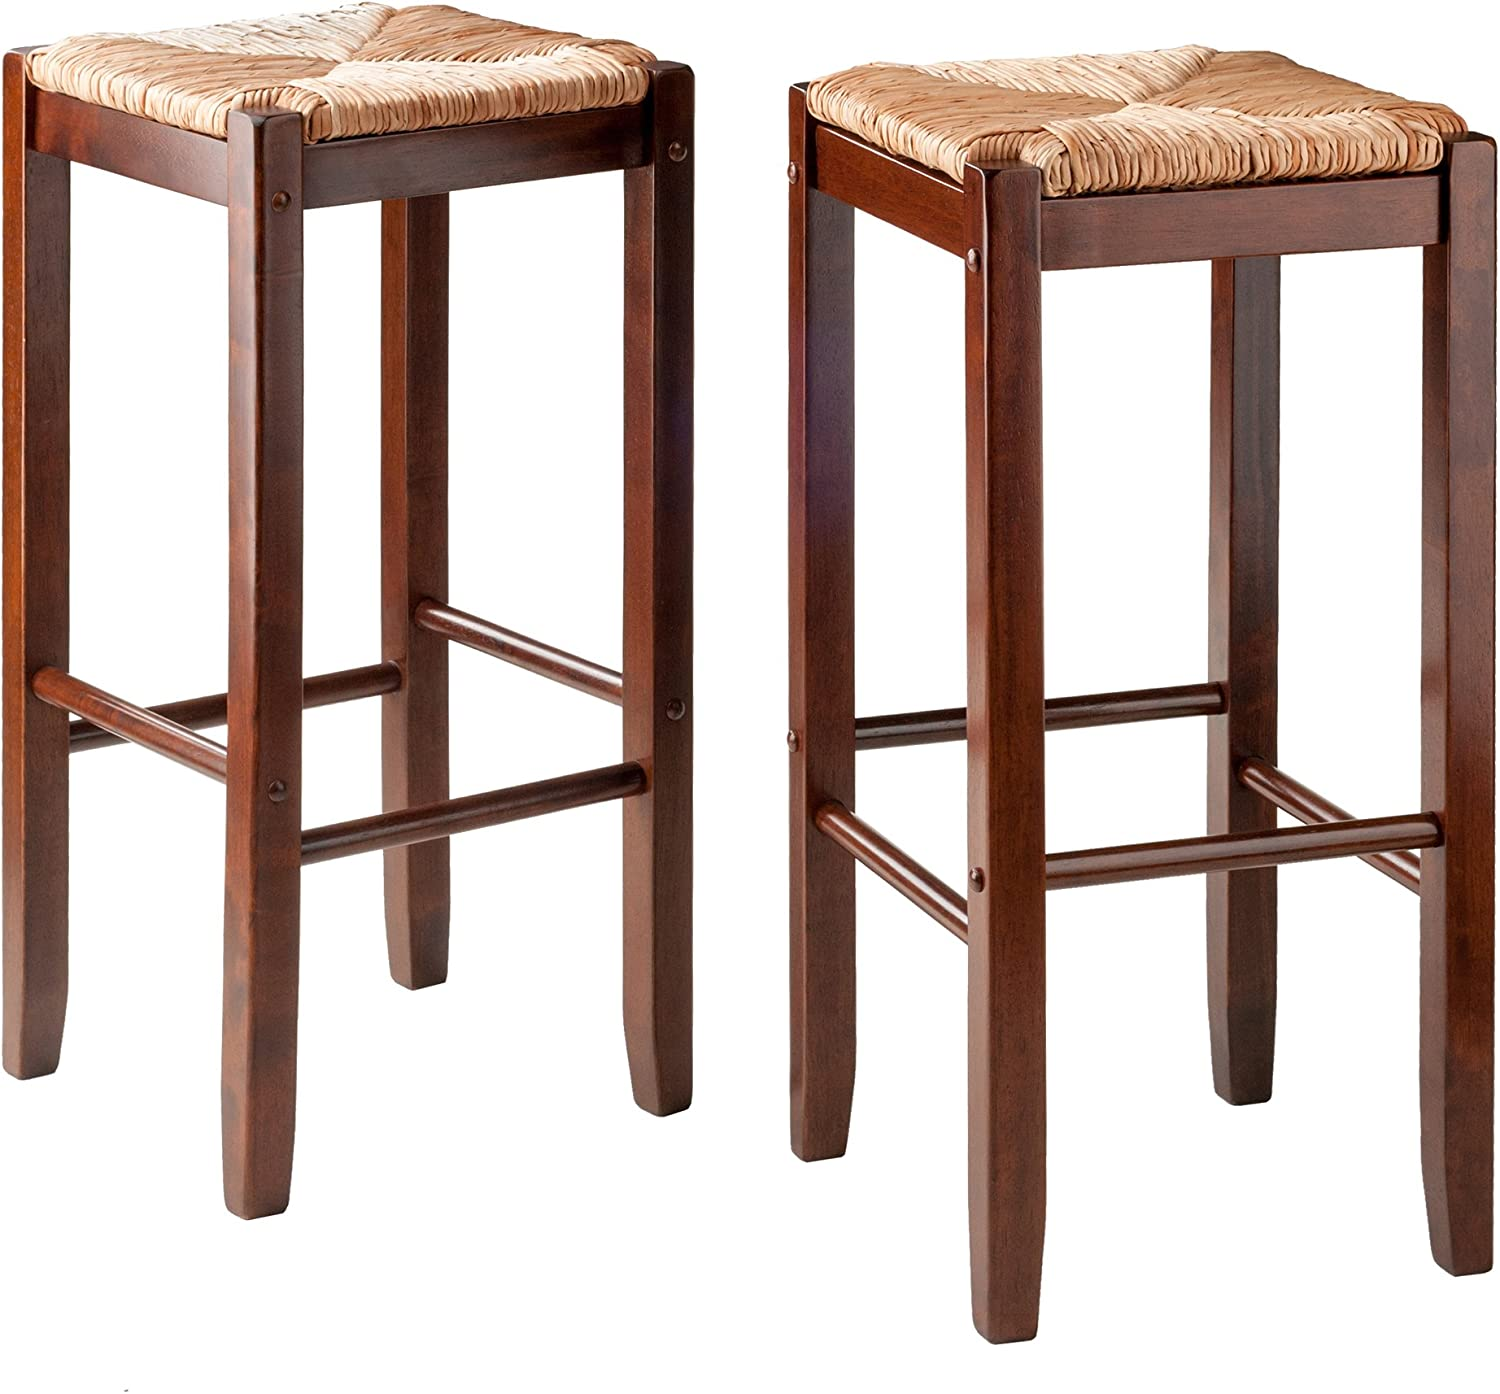 Wooden square seat backless bar stool